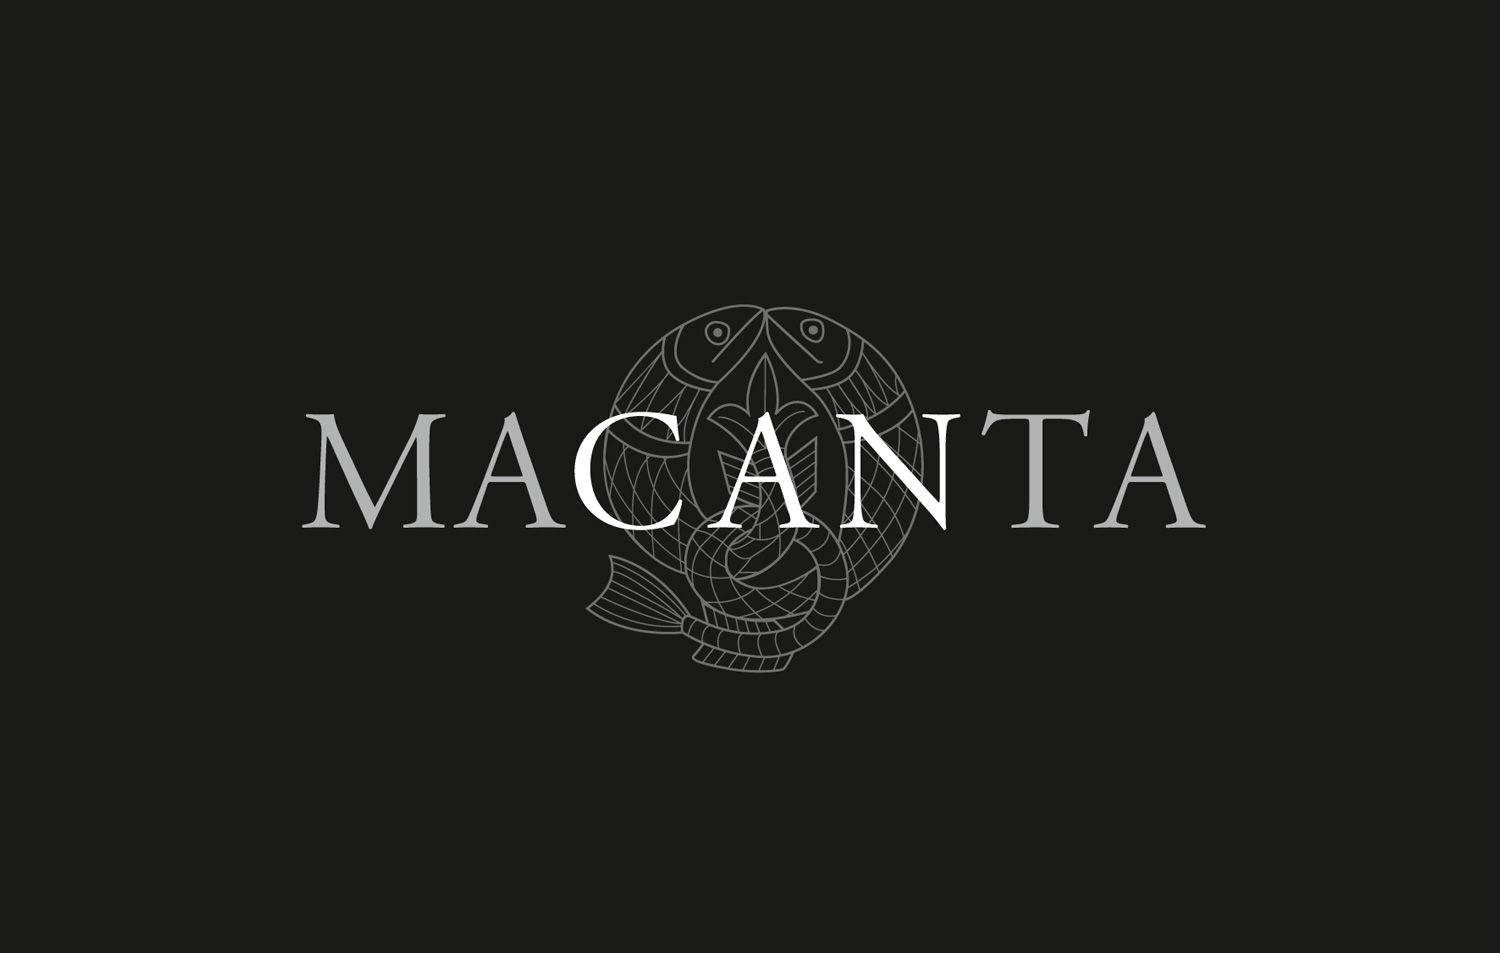 Macanta-Logo-on-Black.jpg